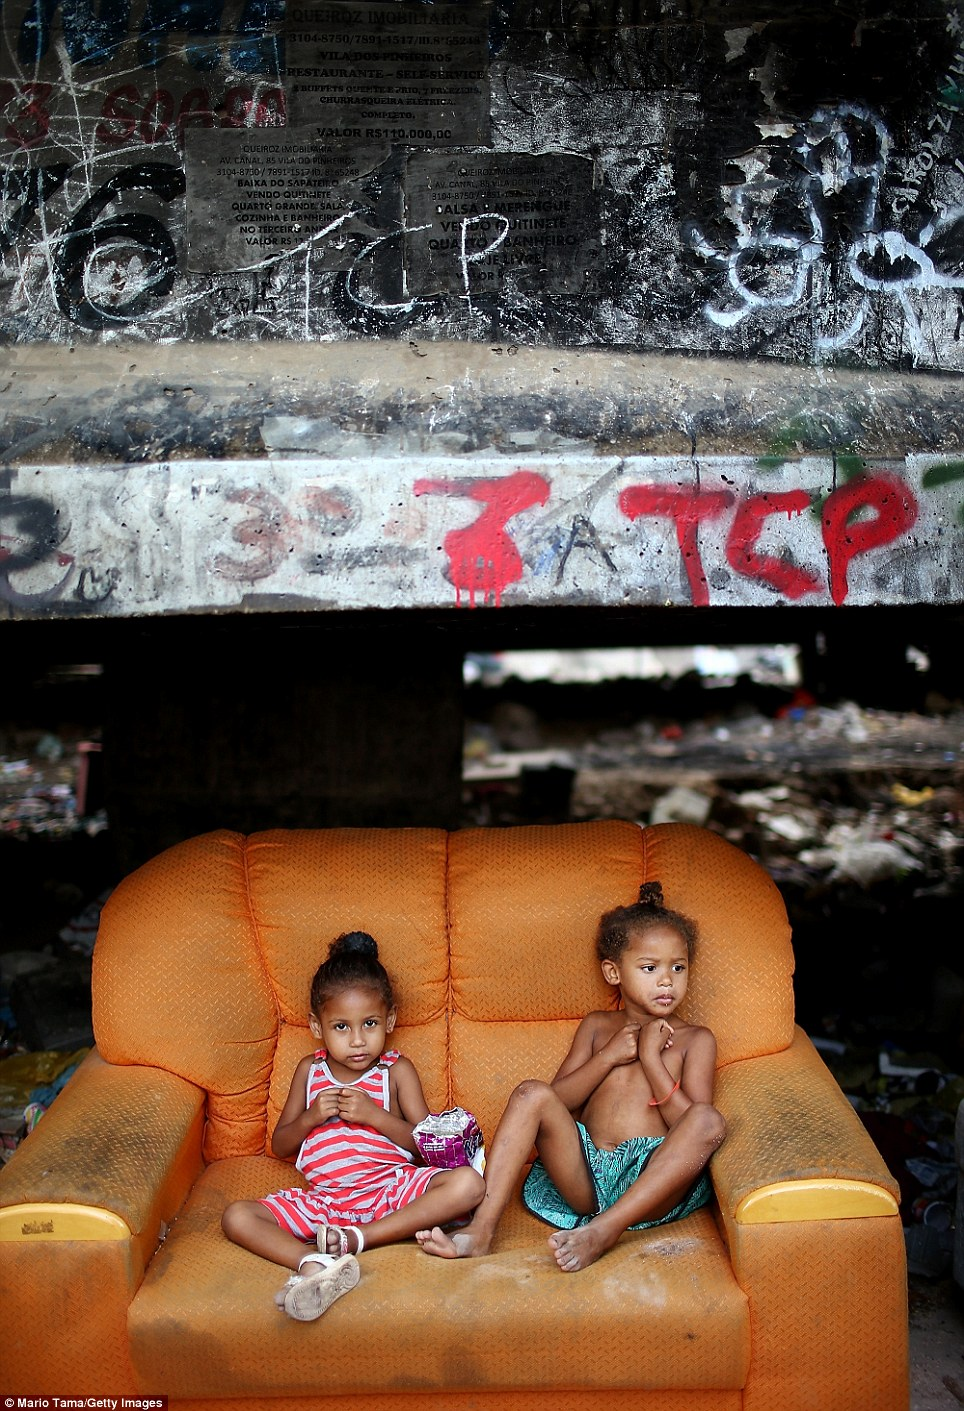 Pacification officers, known as the UPP, will soon occupy and control life within the slum. UPP officers come in after federal troops 'clean-up' a slum imprisoning drug dealers in an attempt to rid the favela of crime. Pictured behind the children are community posters advertising items that are up for sale